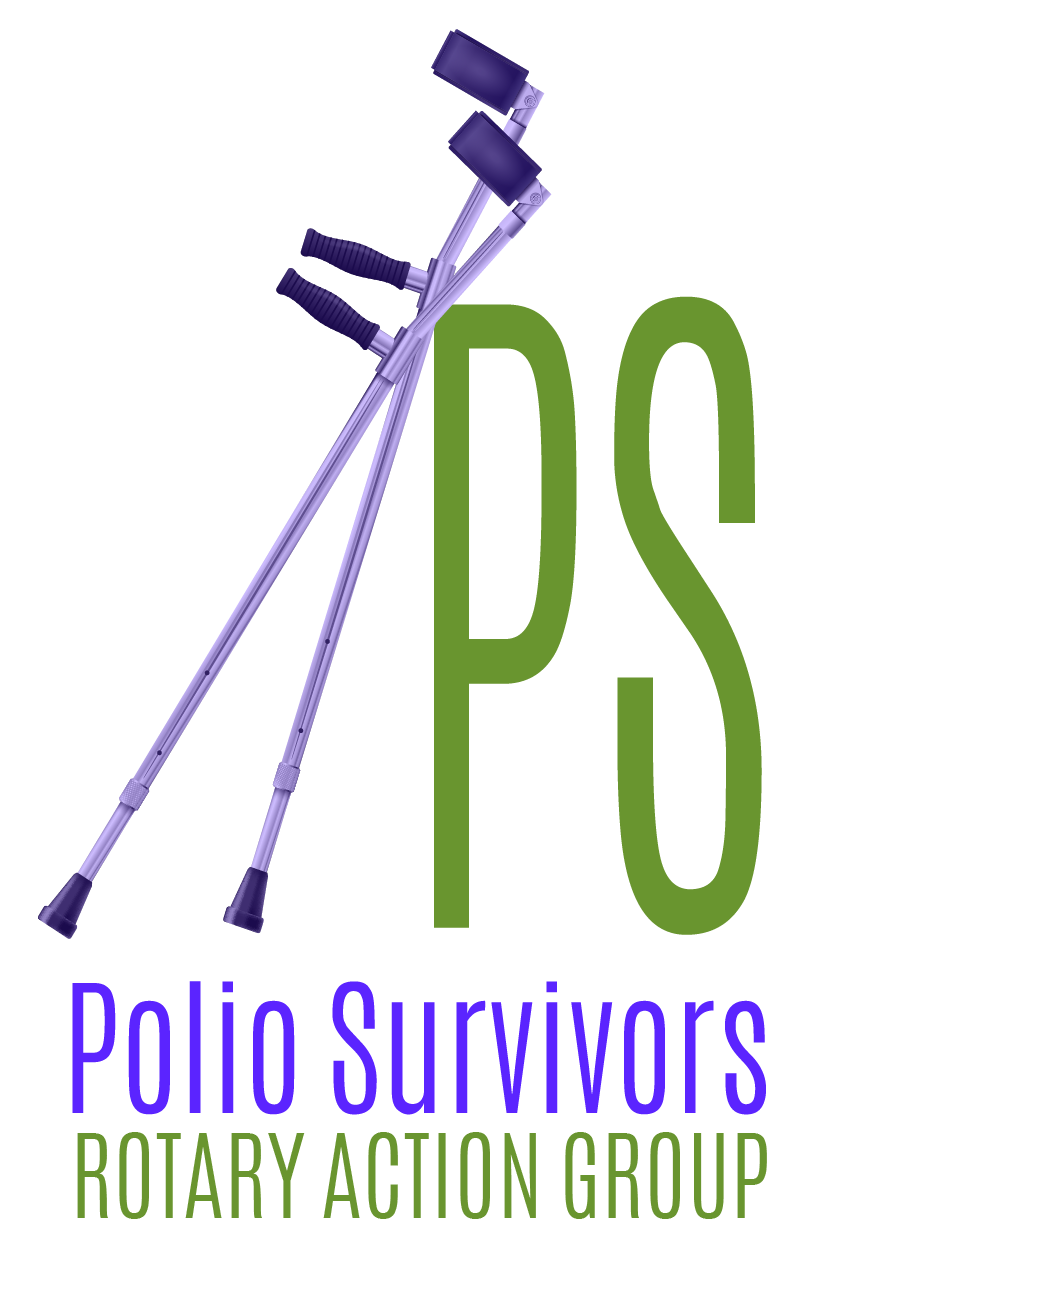 Polio Survivors Rotary Action Group